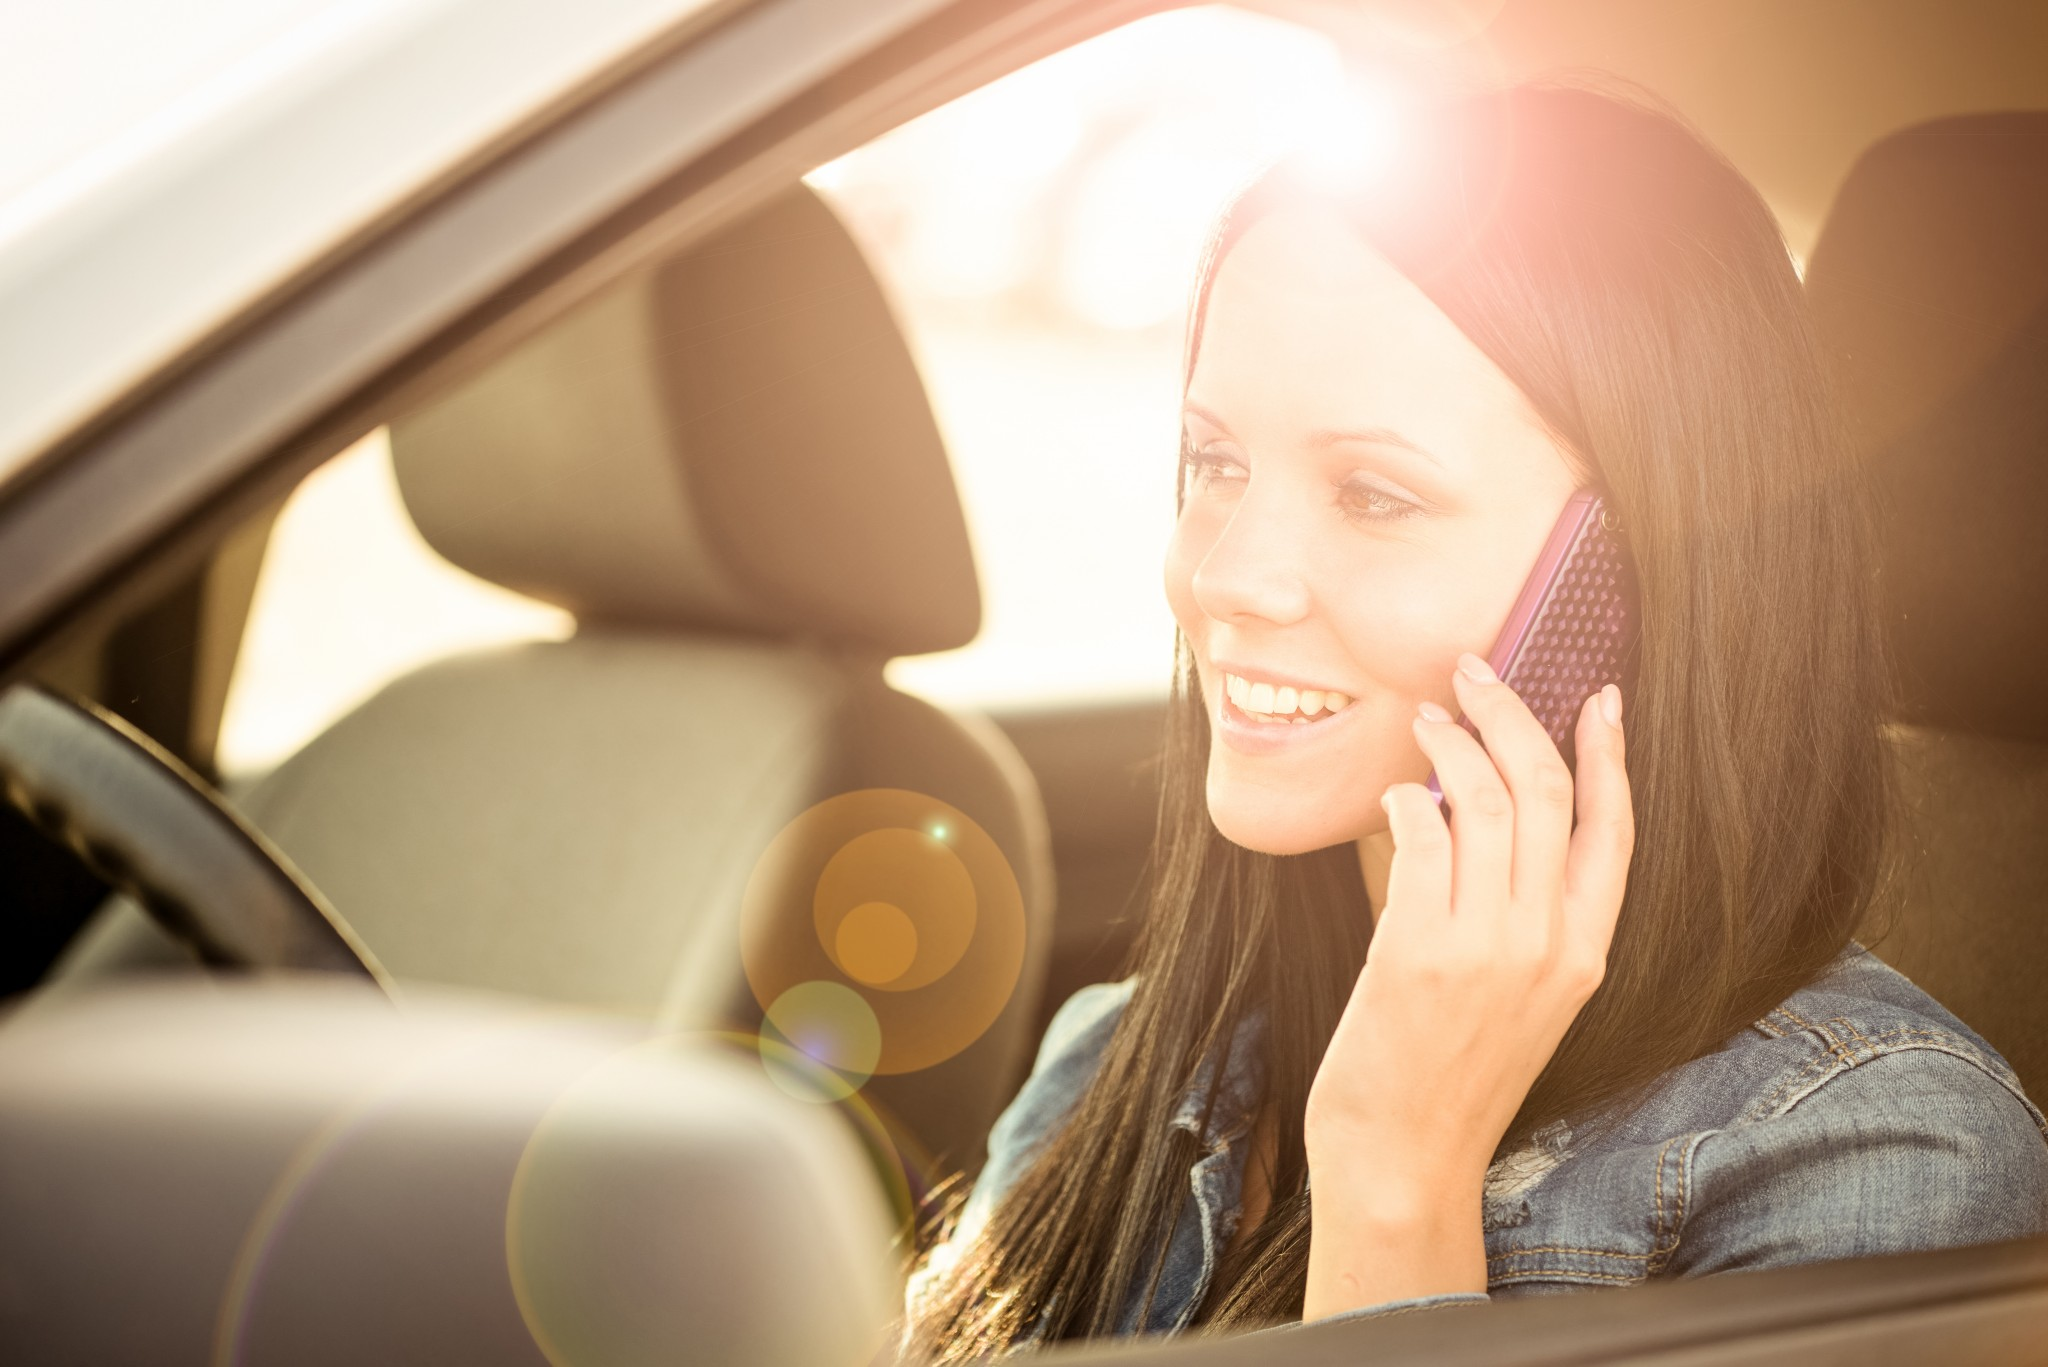 bigstock-Calling-phone-while-driving-ca-84489116